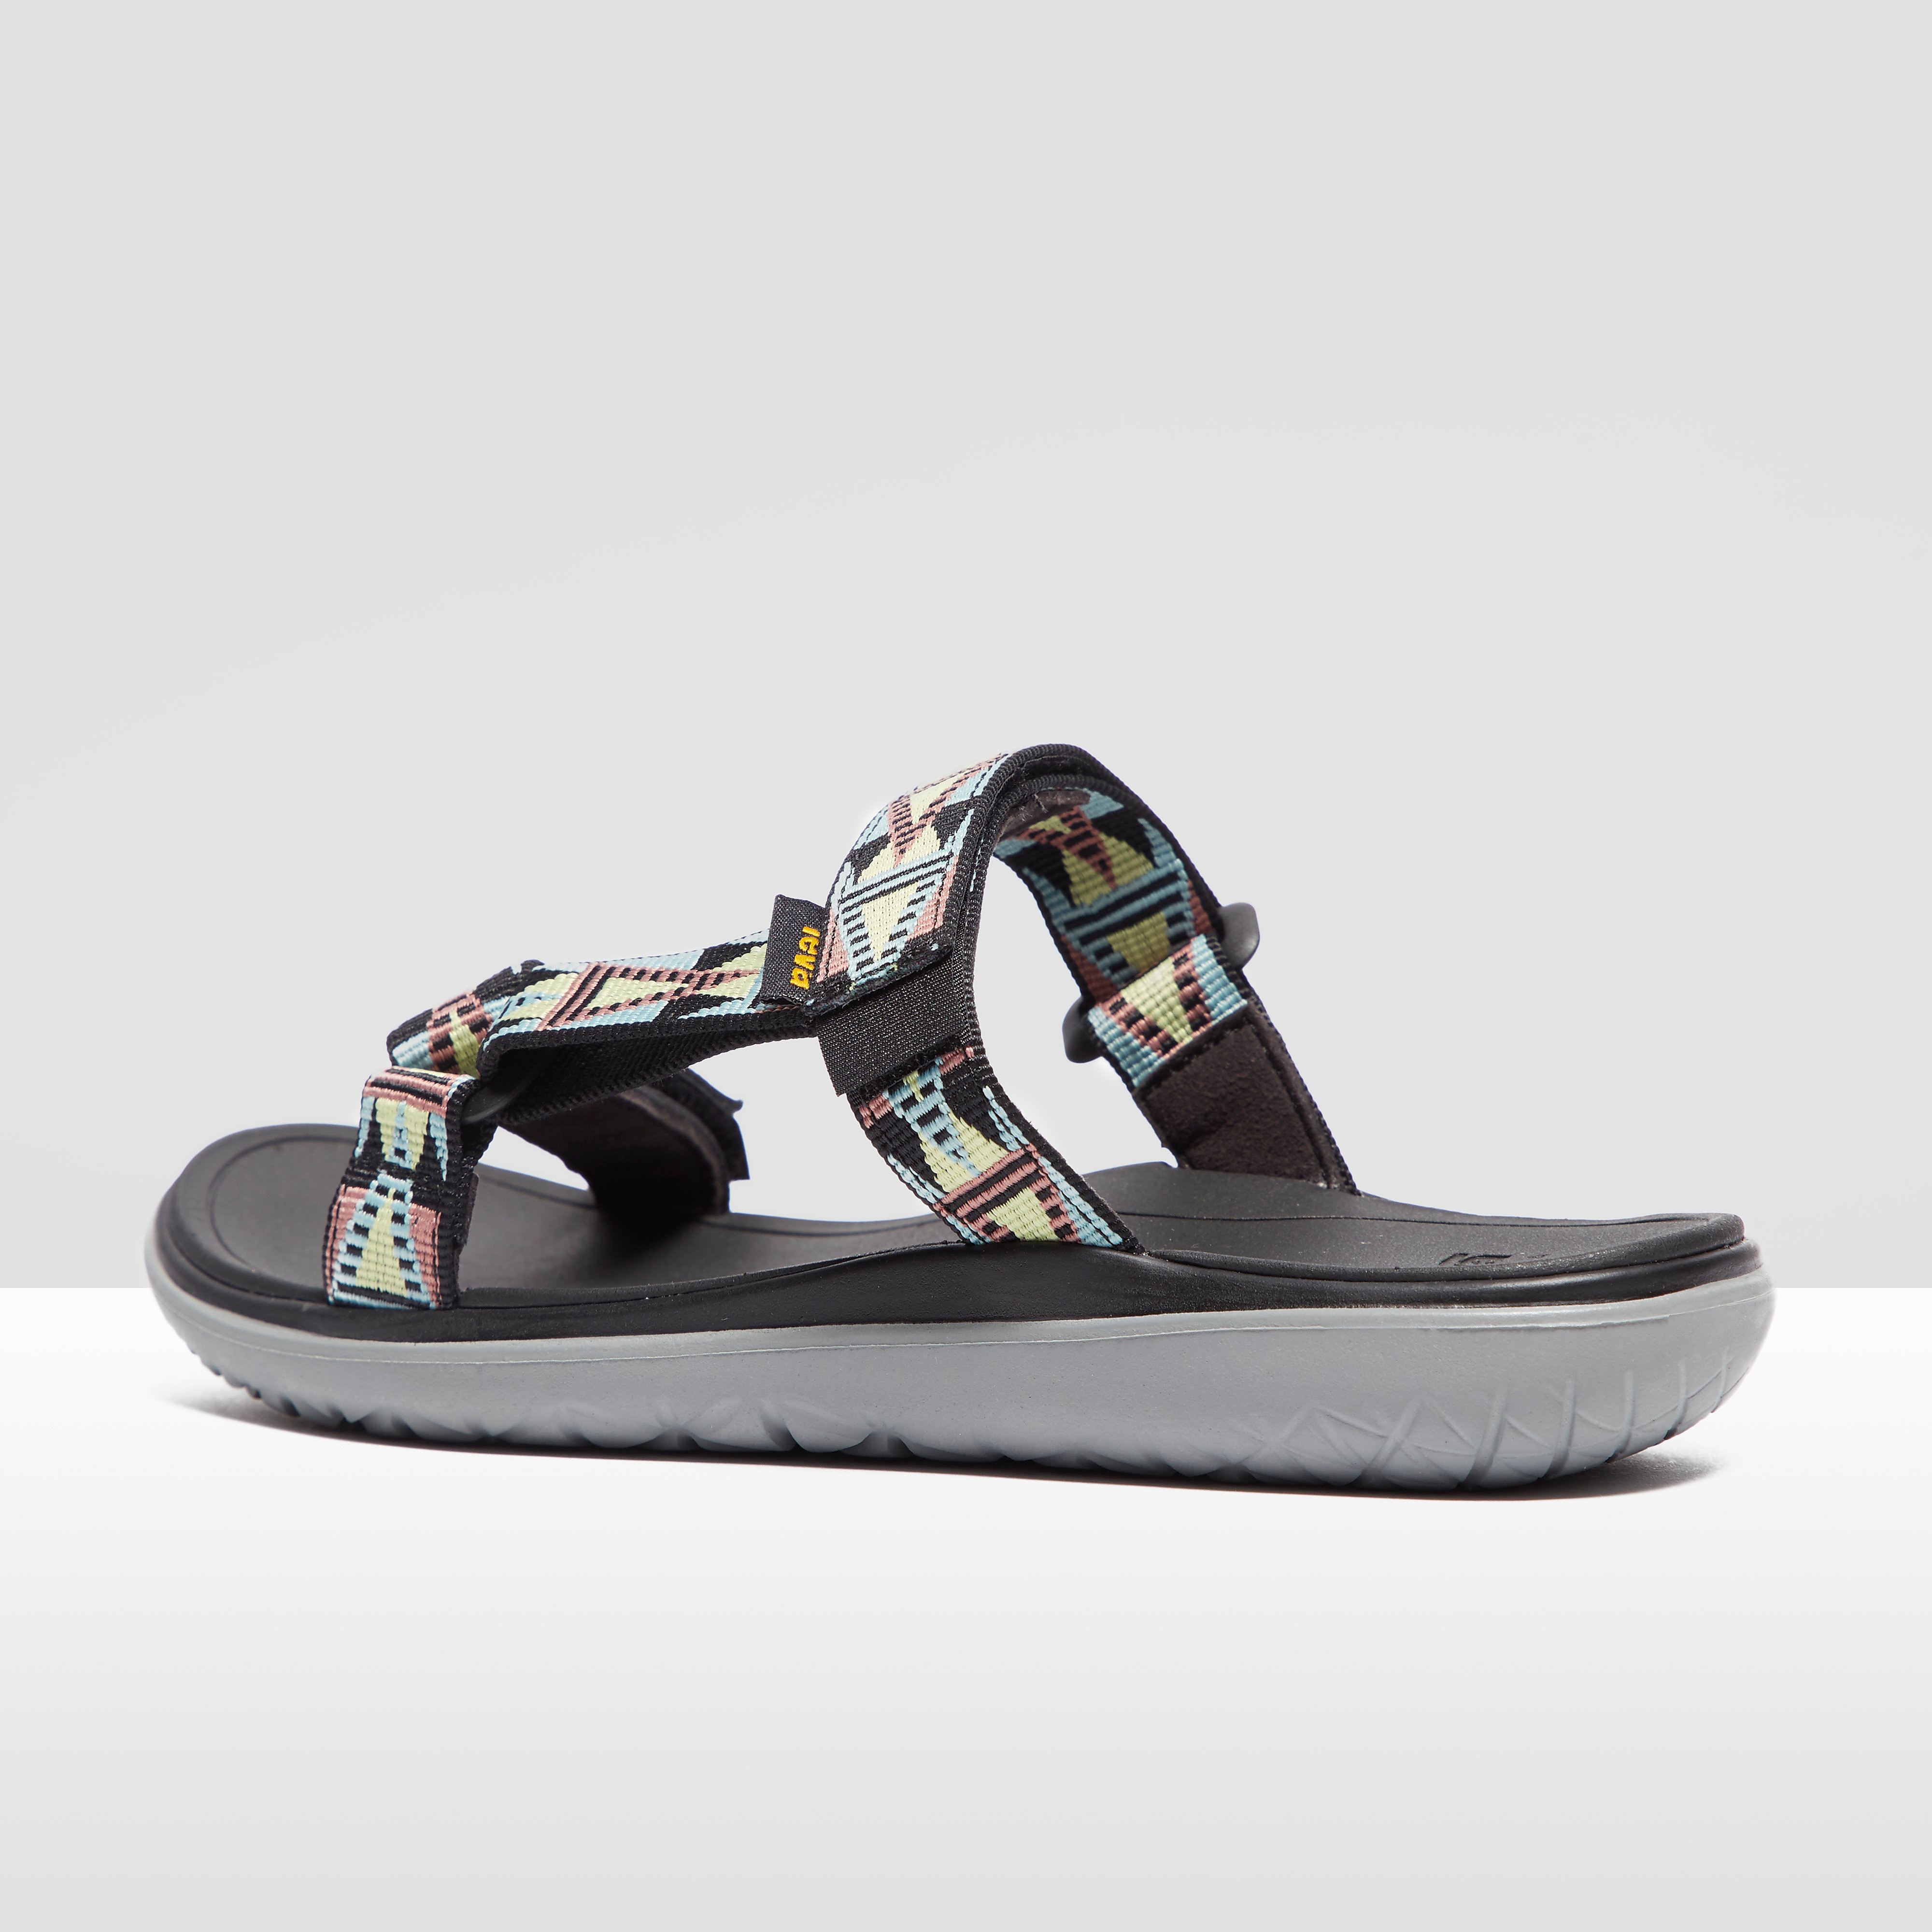 Teva Terra-Float Lexi Women's Sandal